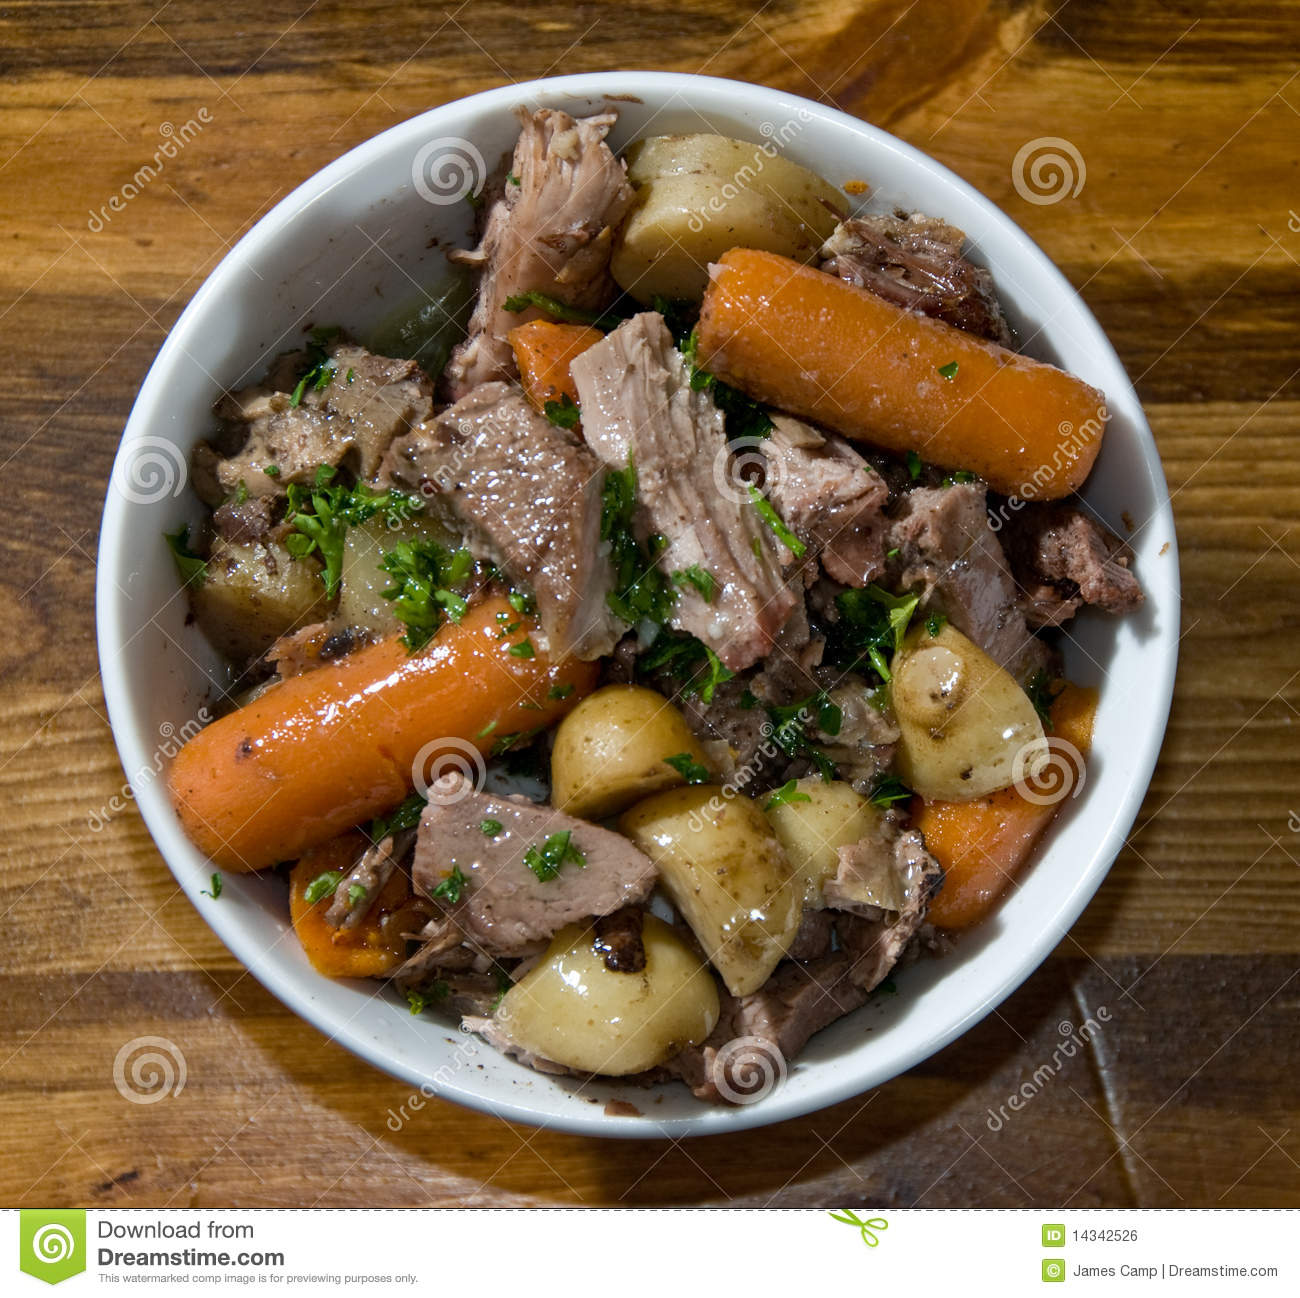 Stewed Lamb With Vegetables Royalty Free Stock Image - Image: 14342526